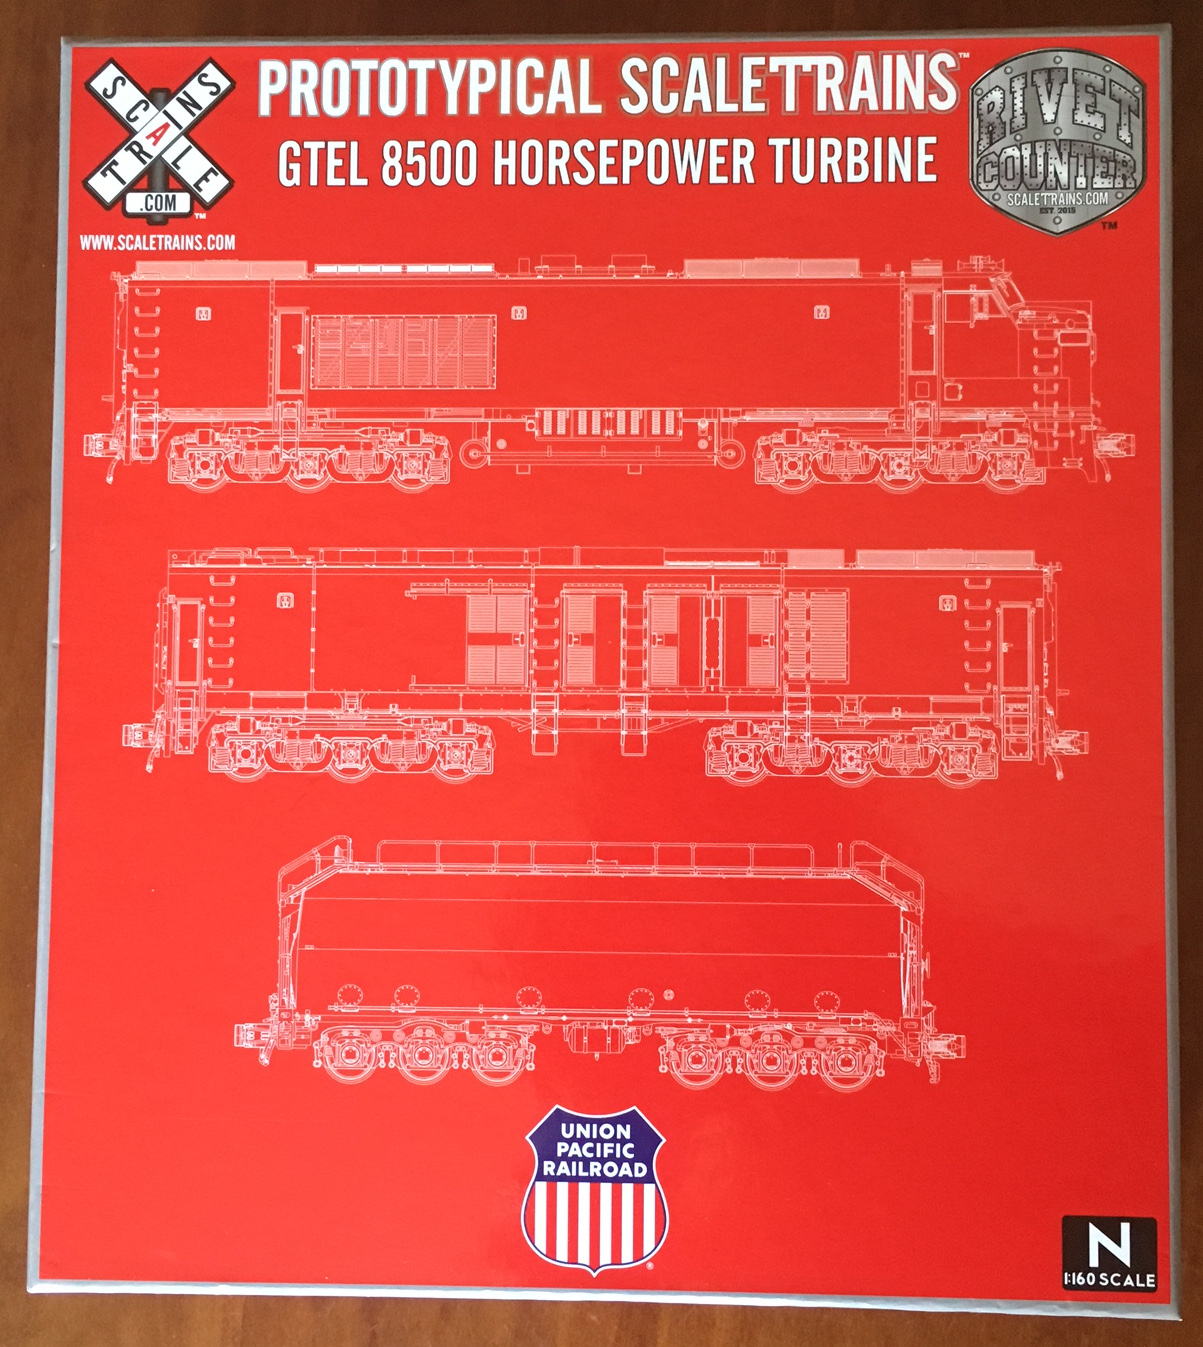 N Scale - ScaleTrains.com - 30231 - Locomotive, Gas Turbine-Electric - Union Pacific - 18